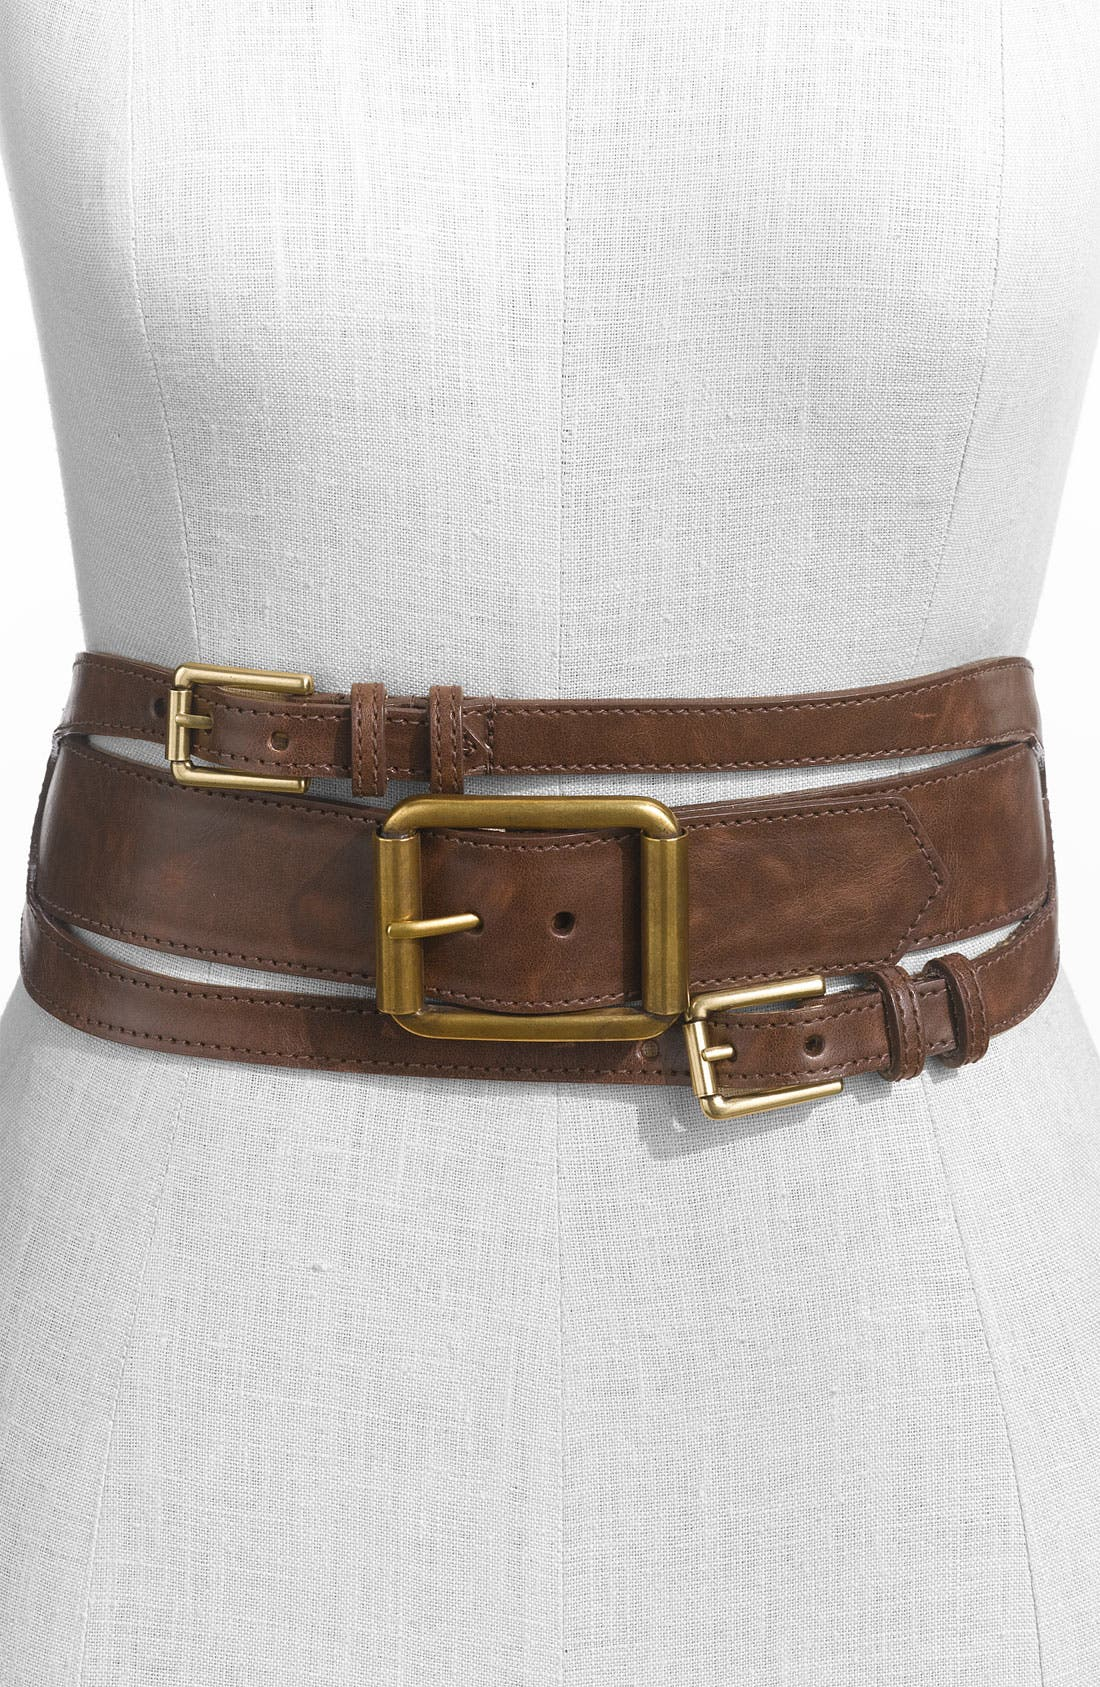 Alternate Image 1 Selected - WCM Multi Buckle Faux Leather Stretch Belt (Nordstrom Exclusive)